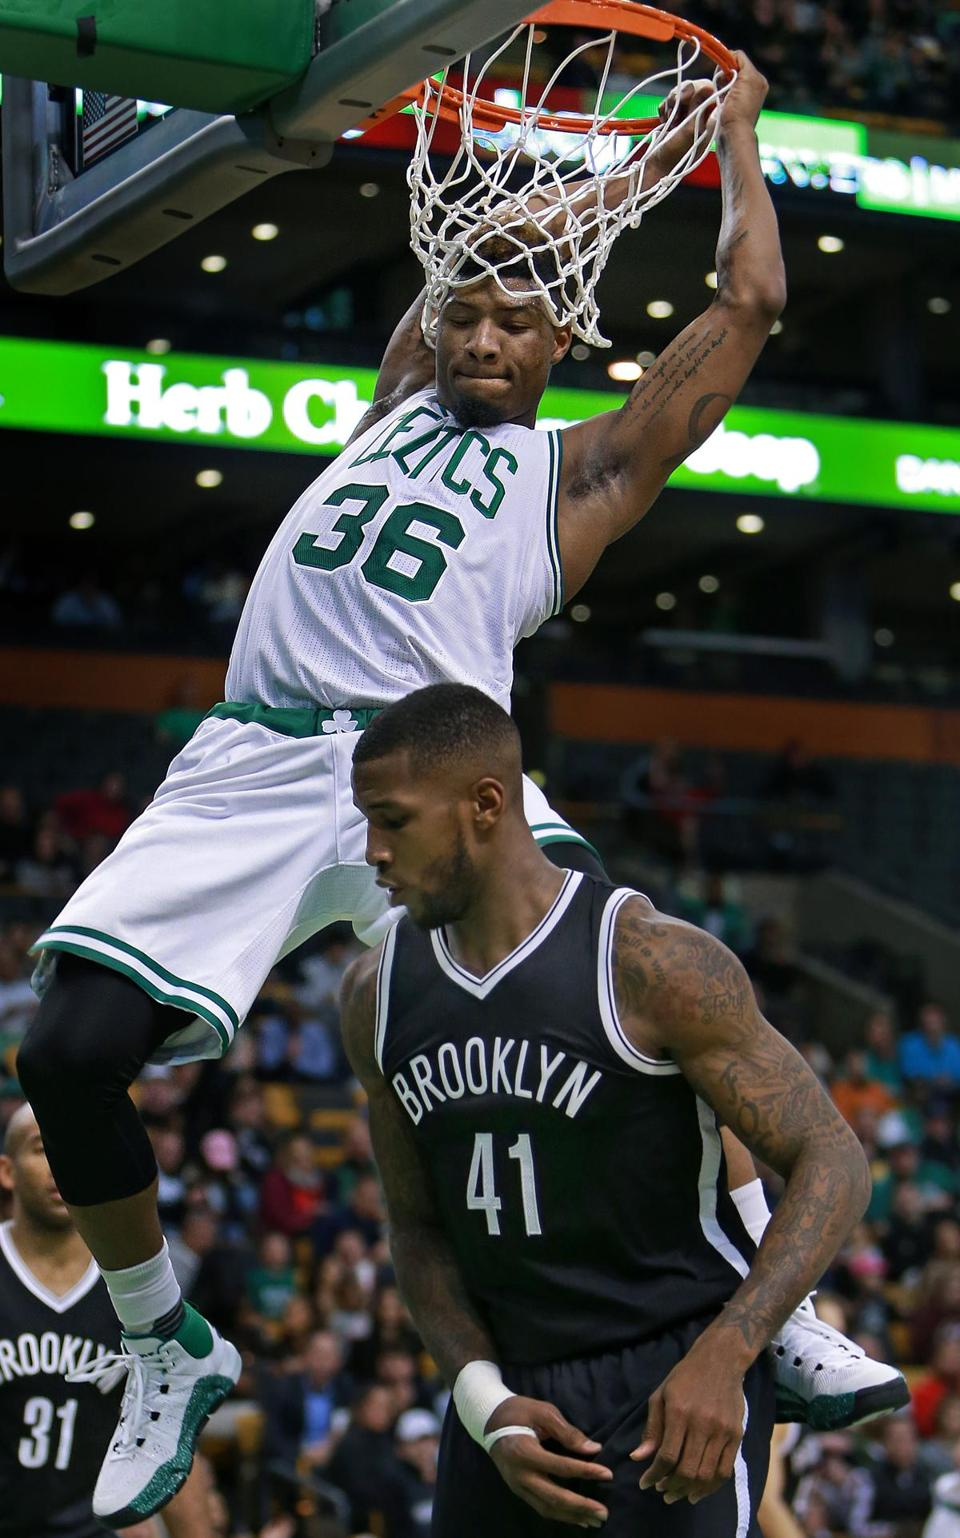 Marcus Smart Took Some Extra Time To Hang On The Net After A Dunk While Brooklyns